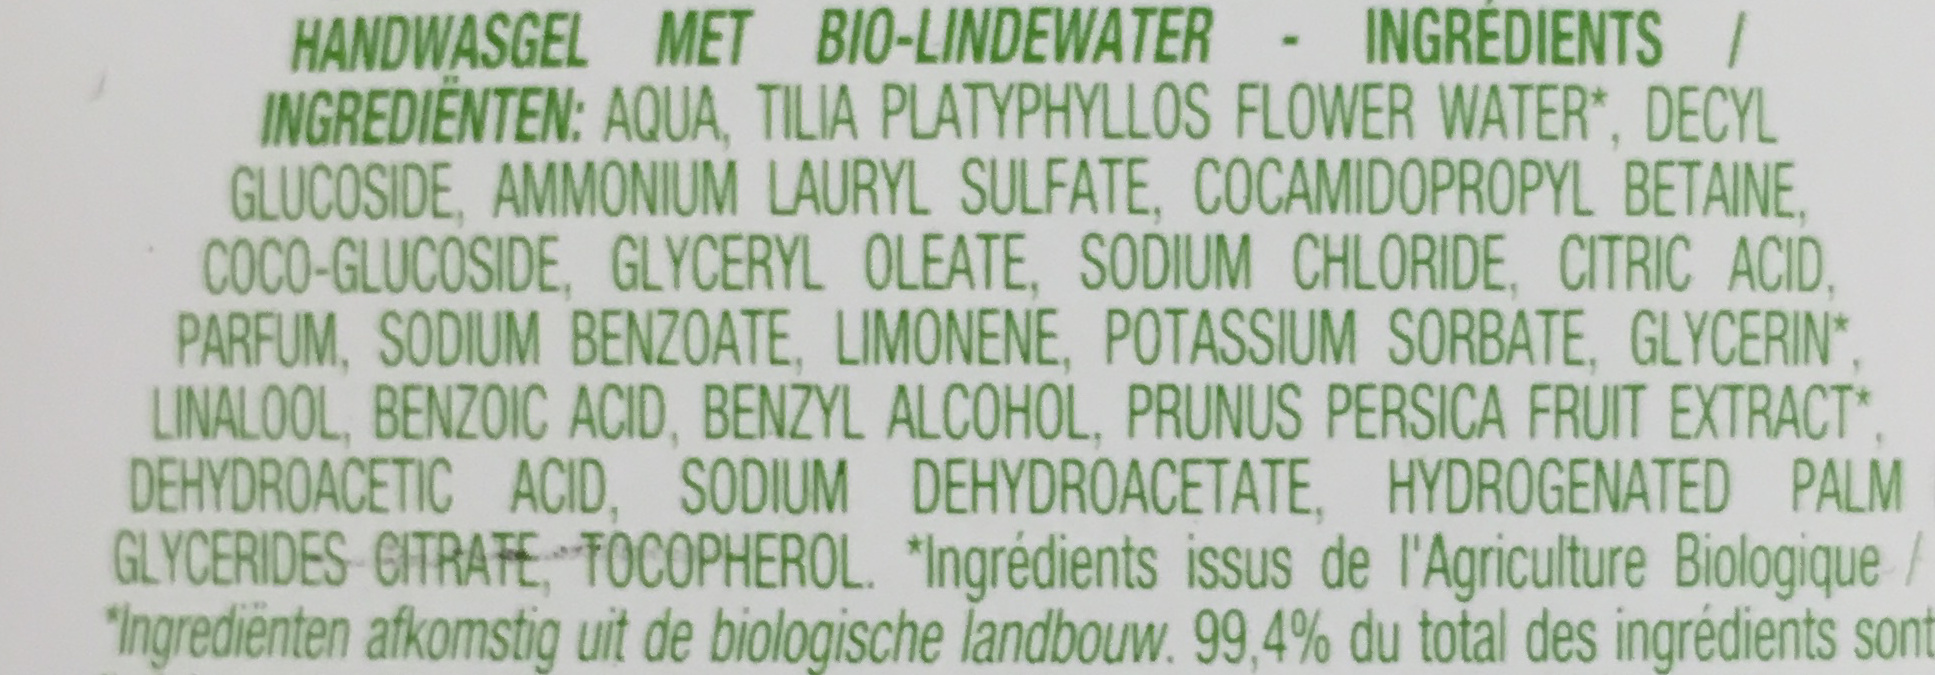 Gel lavant mains à l'eau de tilleul bio - Ingredients